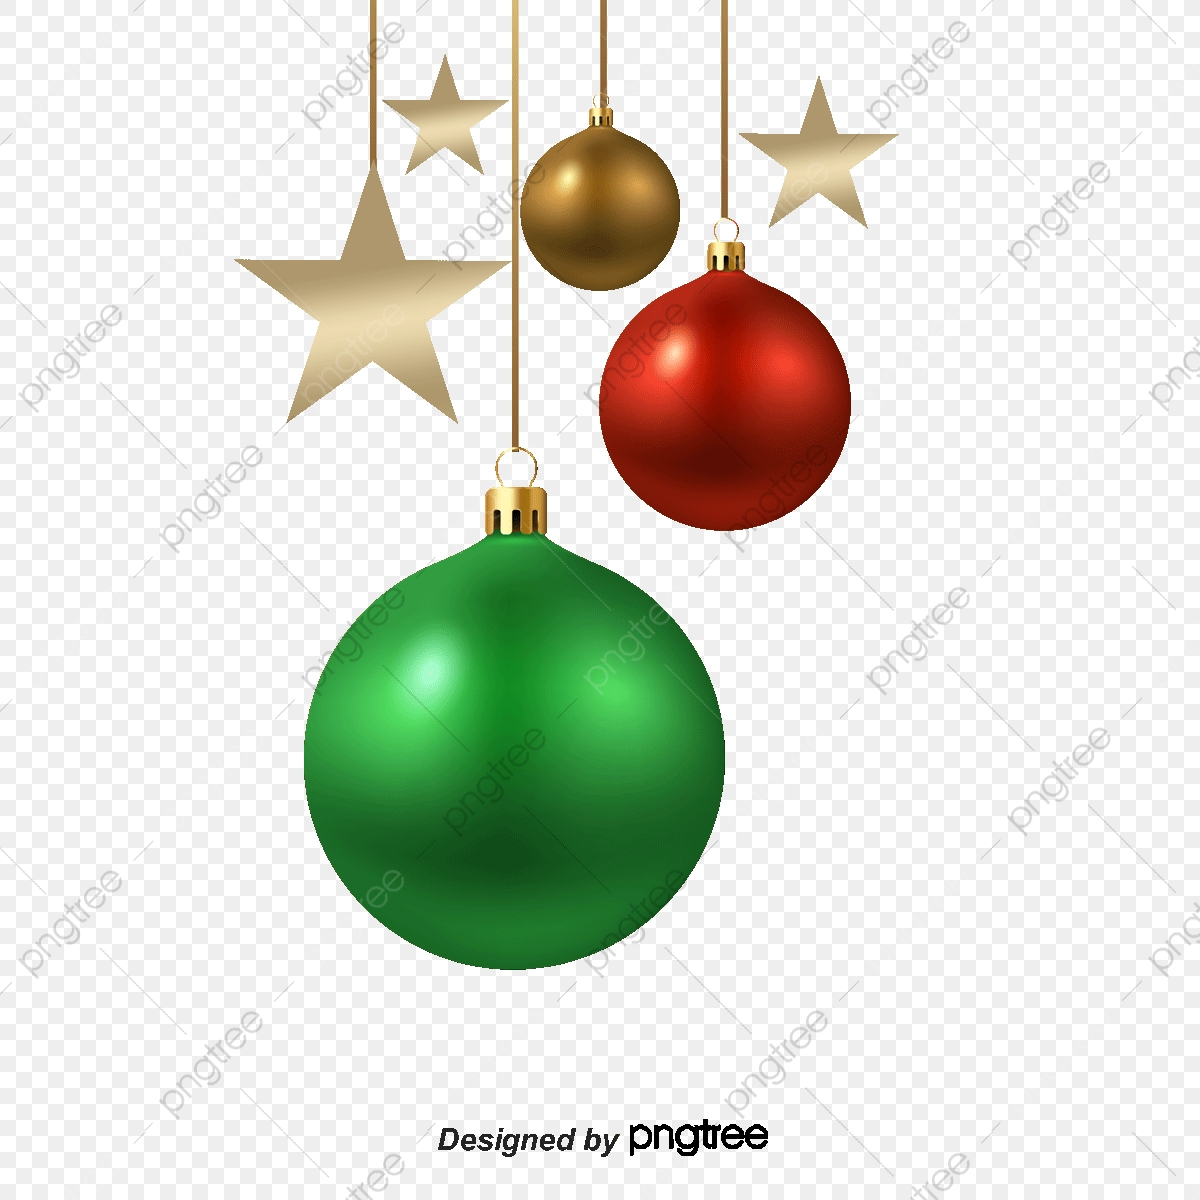 Christmas Ornament Hanging Free Picture Material Christmas Creative Image Free Christmas Gallery Christmas Decorations Png Transparent Clipart Image And Psd File For Free Download